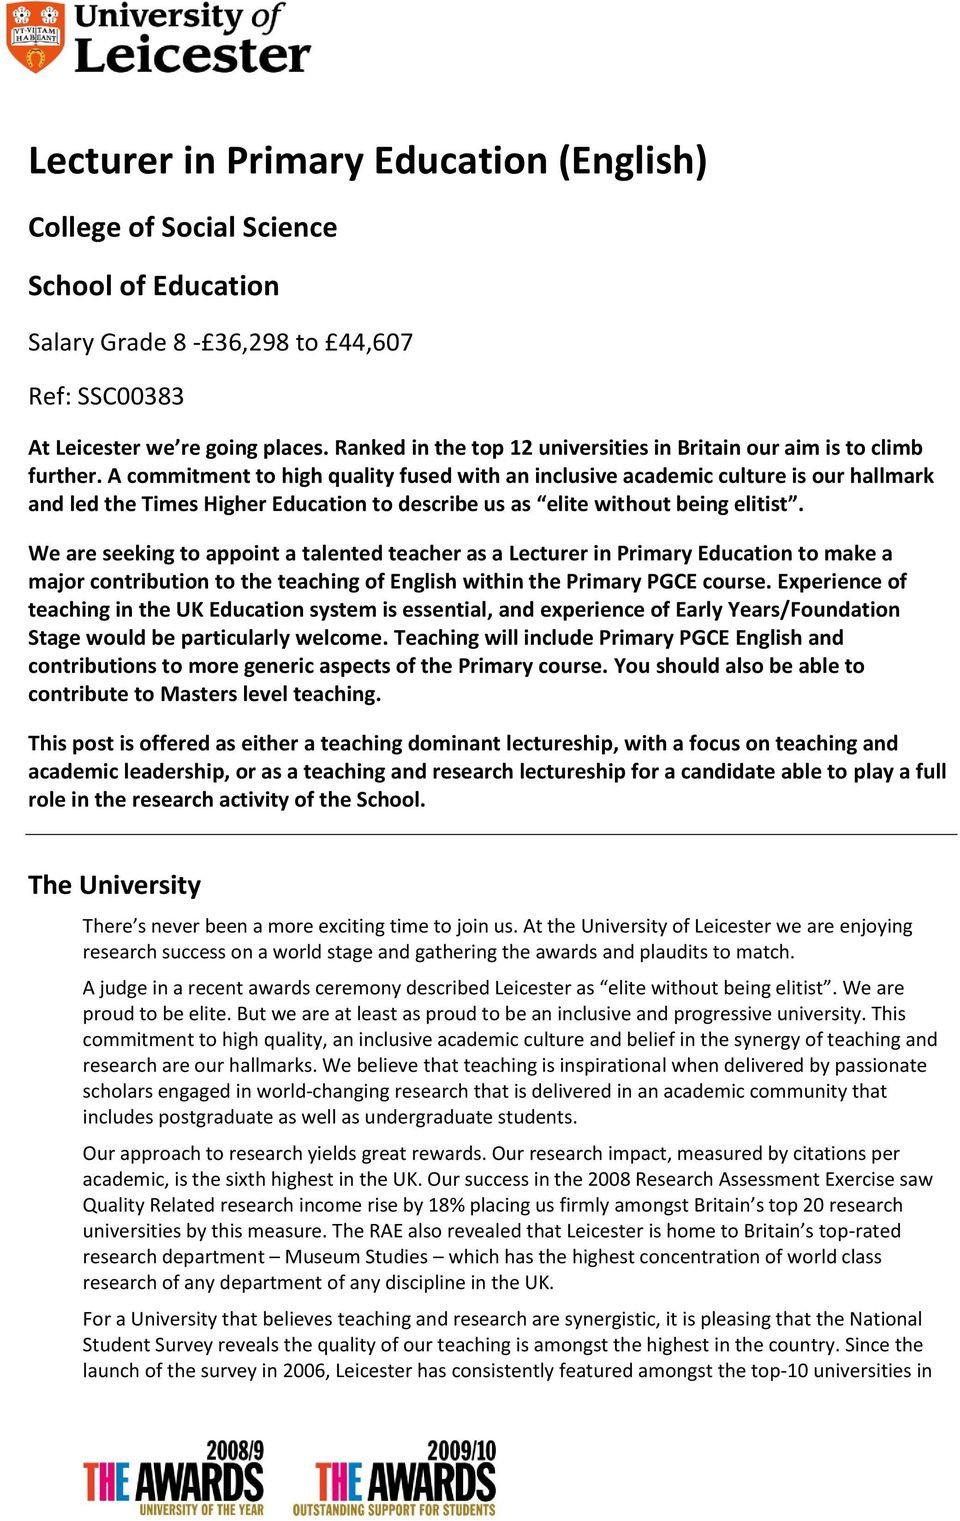 A commitment to high quality fused with an inclusive academic culture is our hallmark and led the Times Higher Education to describe us as elite without being elitist.